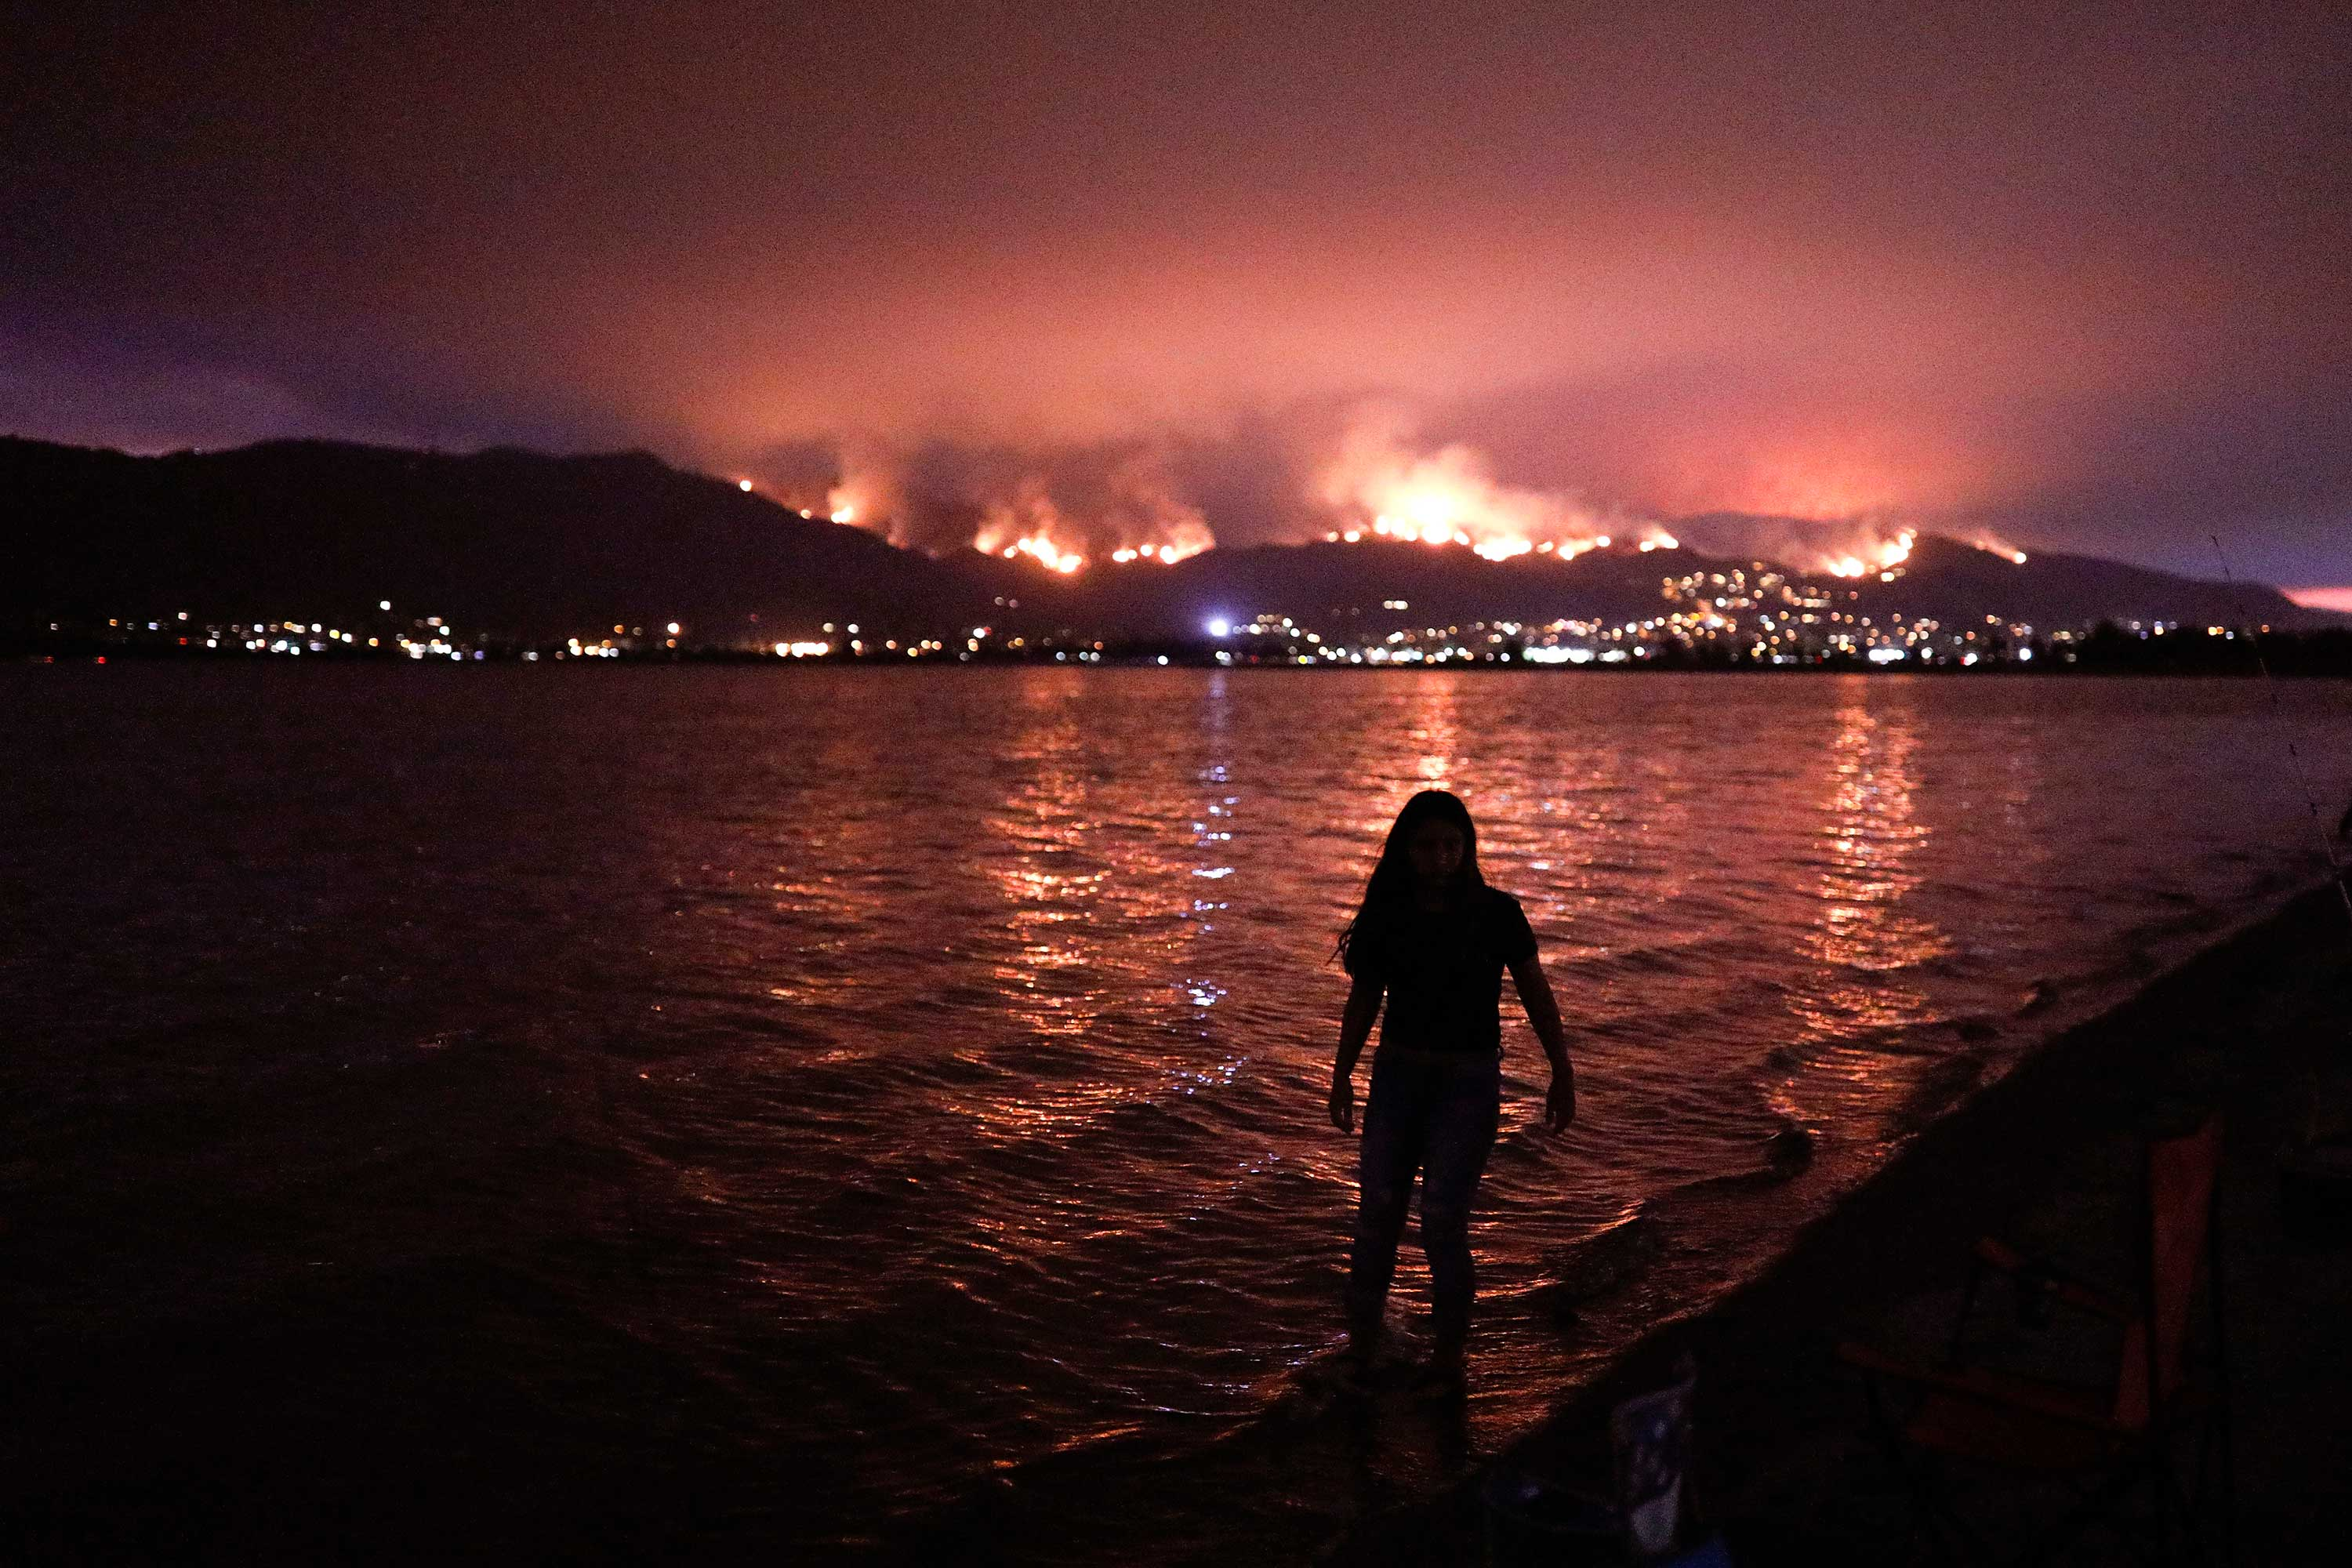 <div class='meta'><div class='origin-logo' data-origin='none'></div><span class='caption-text' data-credit='Jae C. Hong/AP Photo'>A girl wades through water while watching a wildfire burn in the Cleveland National Forest in Lake Elsinore, Calif., Wednesday, Aug. 8, 2018.</span></div>